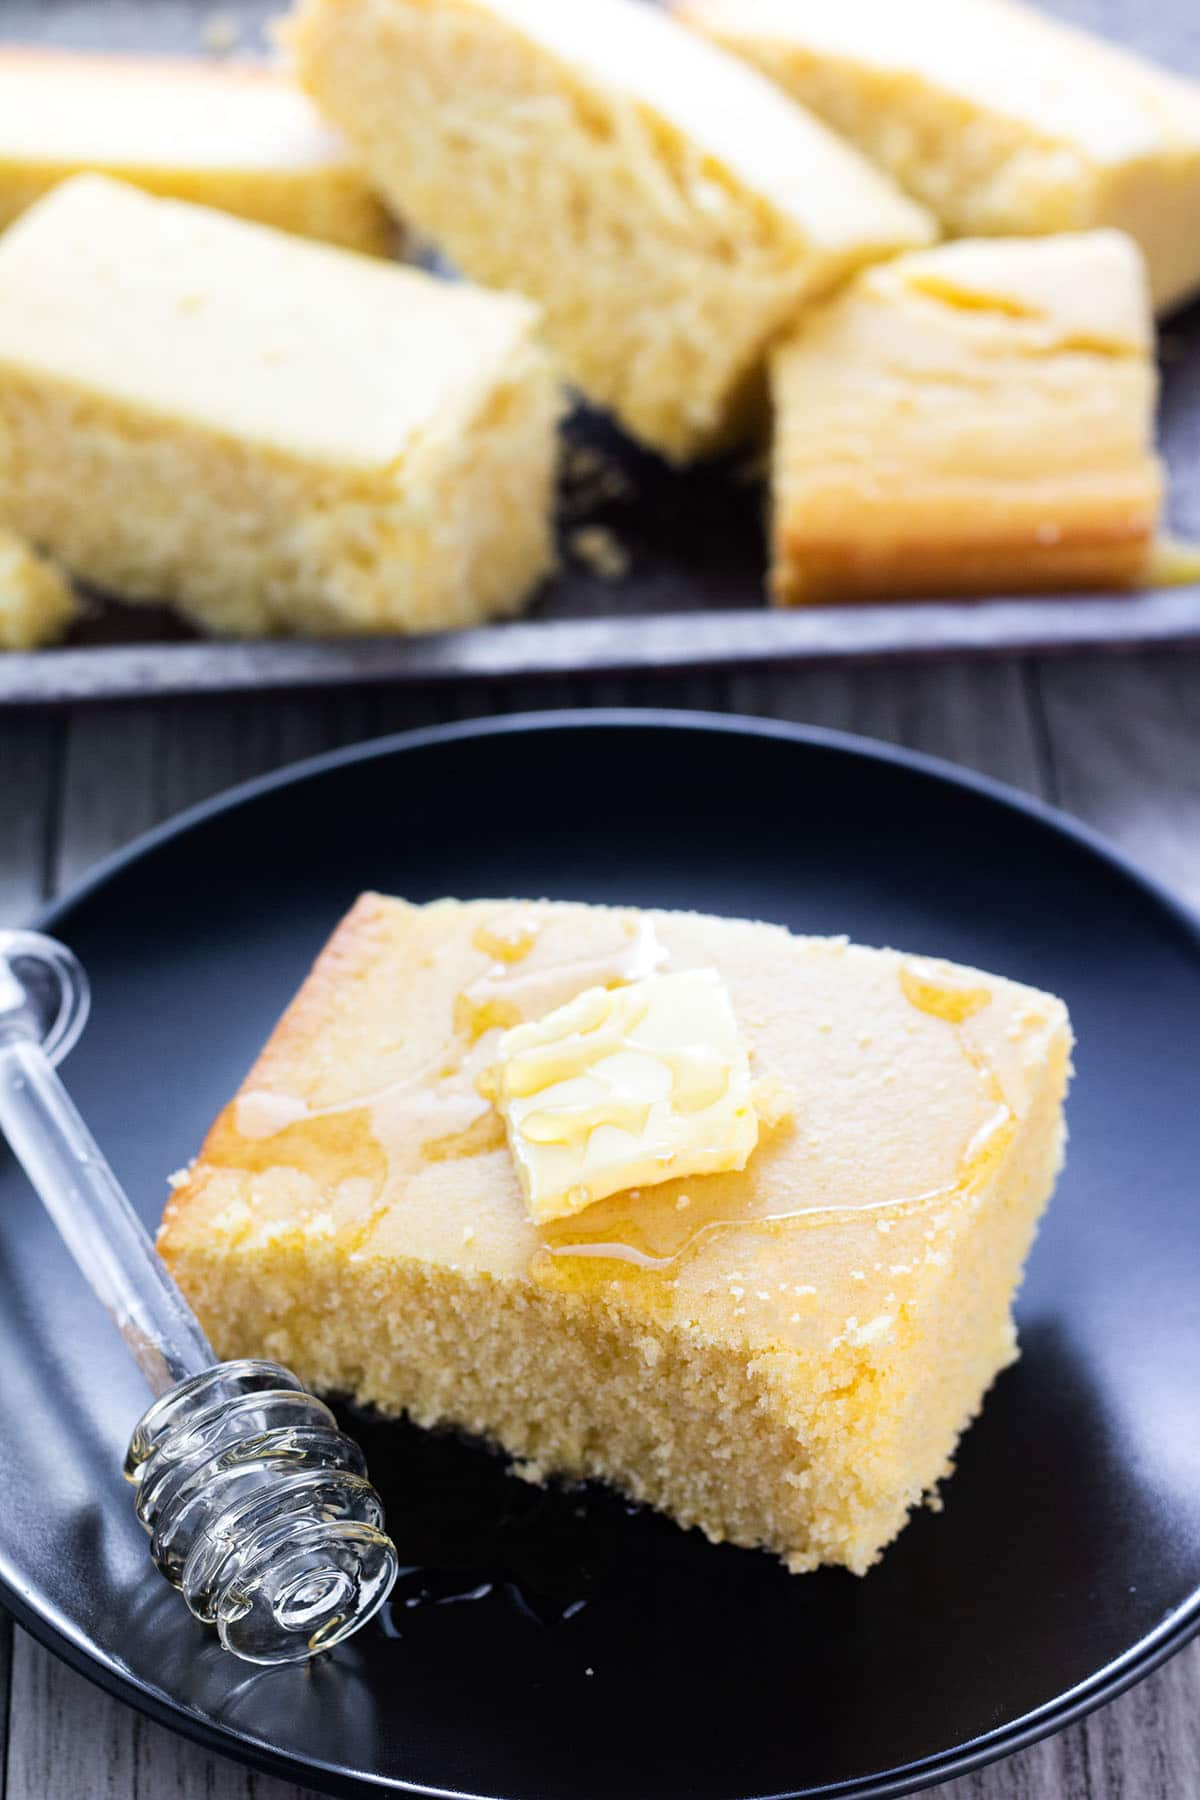 A slice of cornbread on a plate, with butter and honey